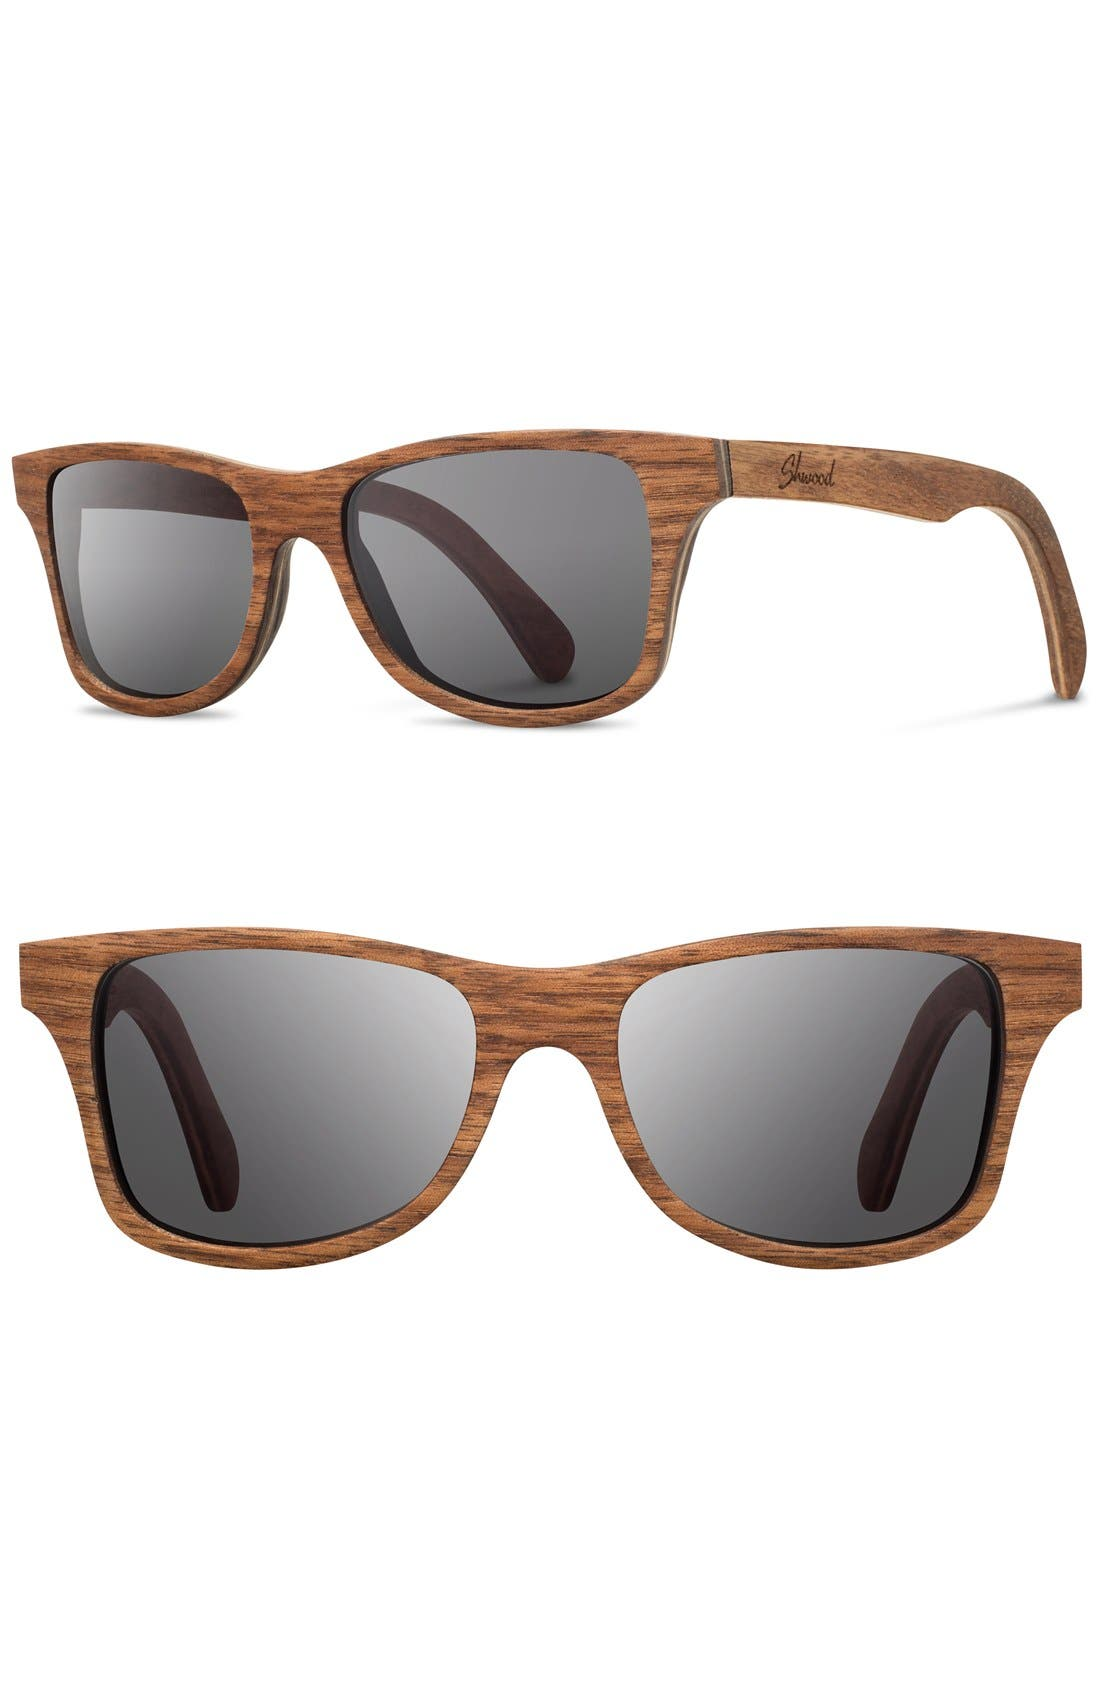 'Canby' 54mm Wood Sunglasses,                             Main thumbnail 1, color,                             Walnut